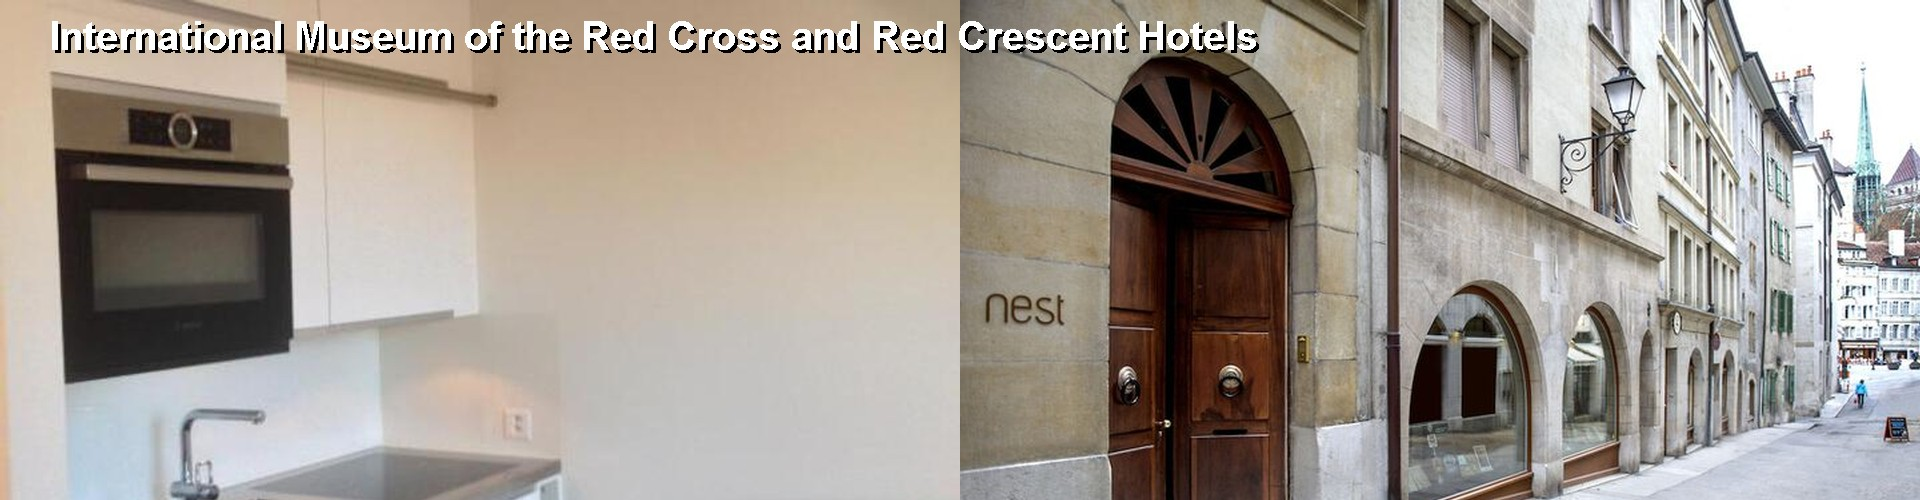 5 Best Hotels near International Museum of the Red Cross and Red Crescent